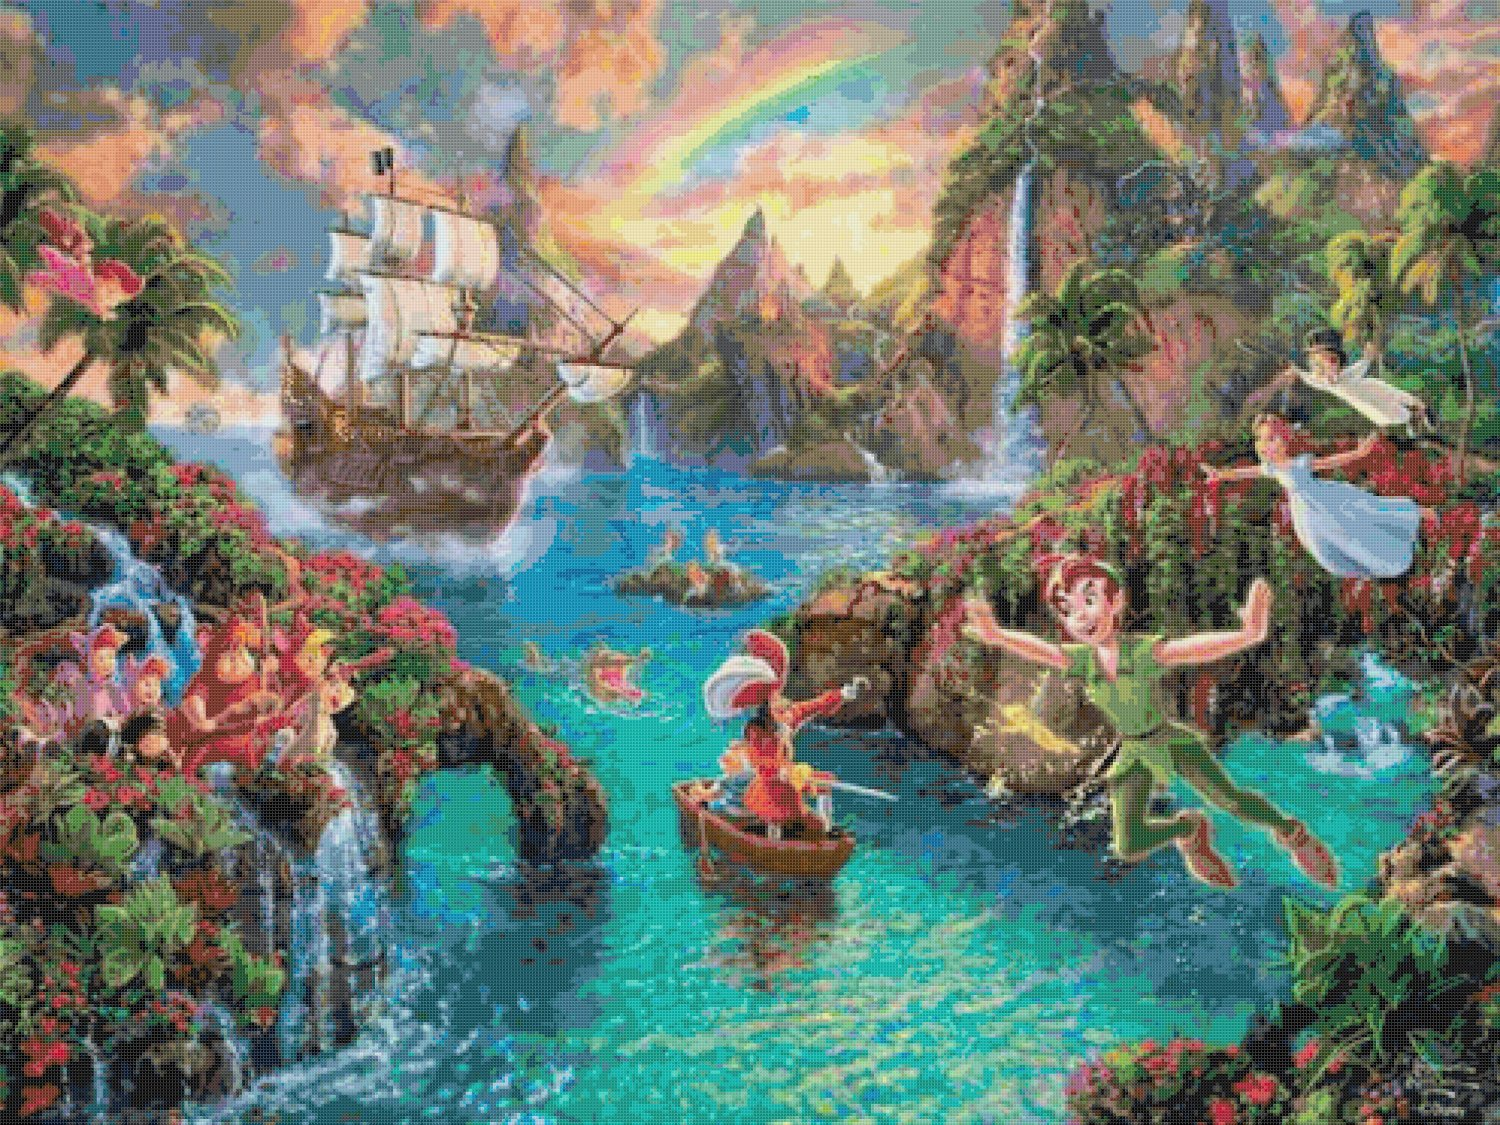 "Peter pan cross stitch pattern Kinkade Cross Stitch - 35.43"" x 26.57"" - E1620"